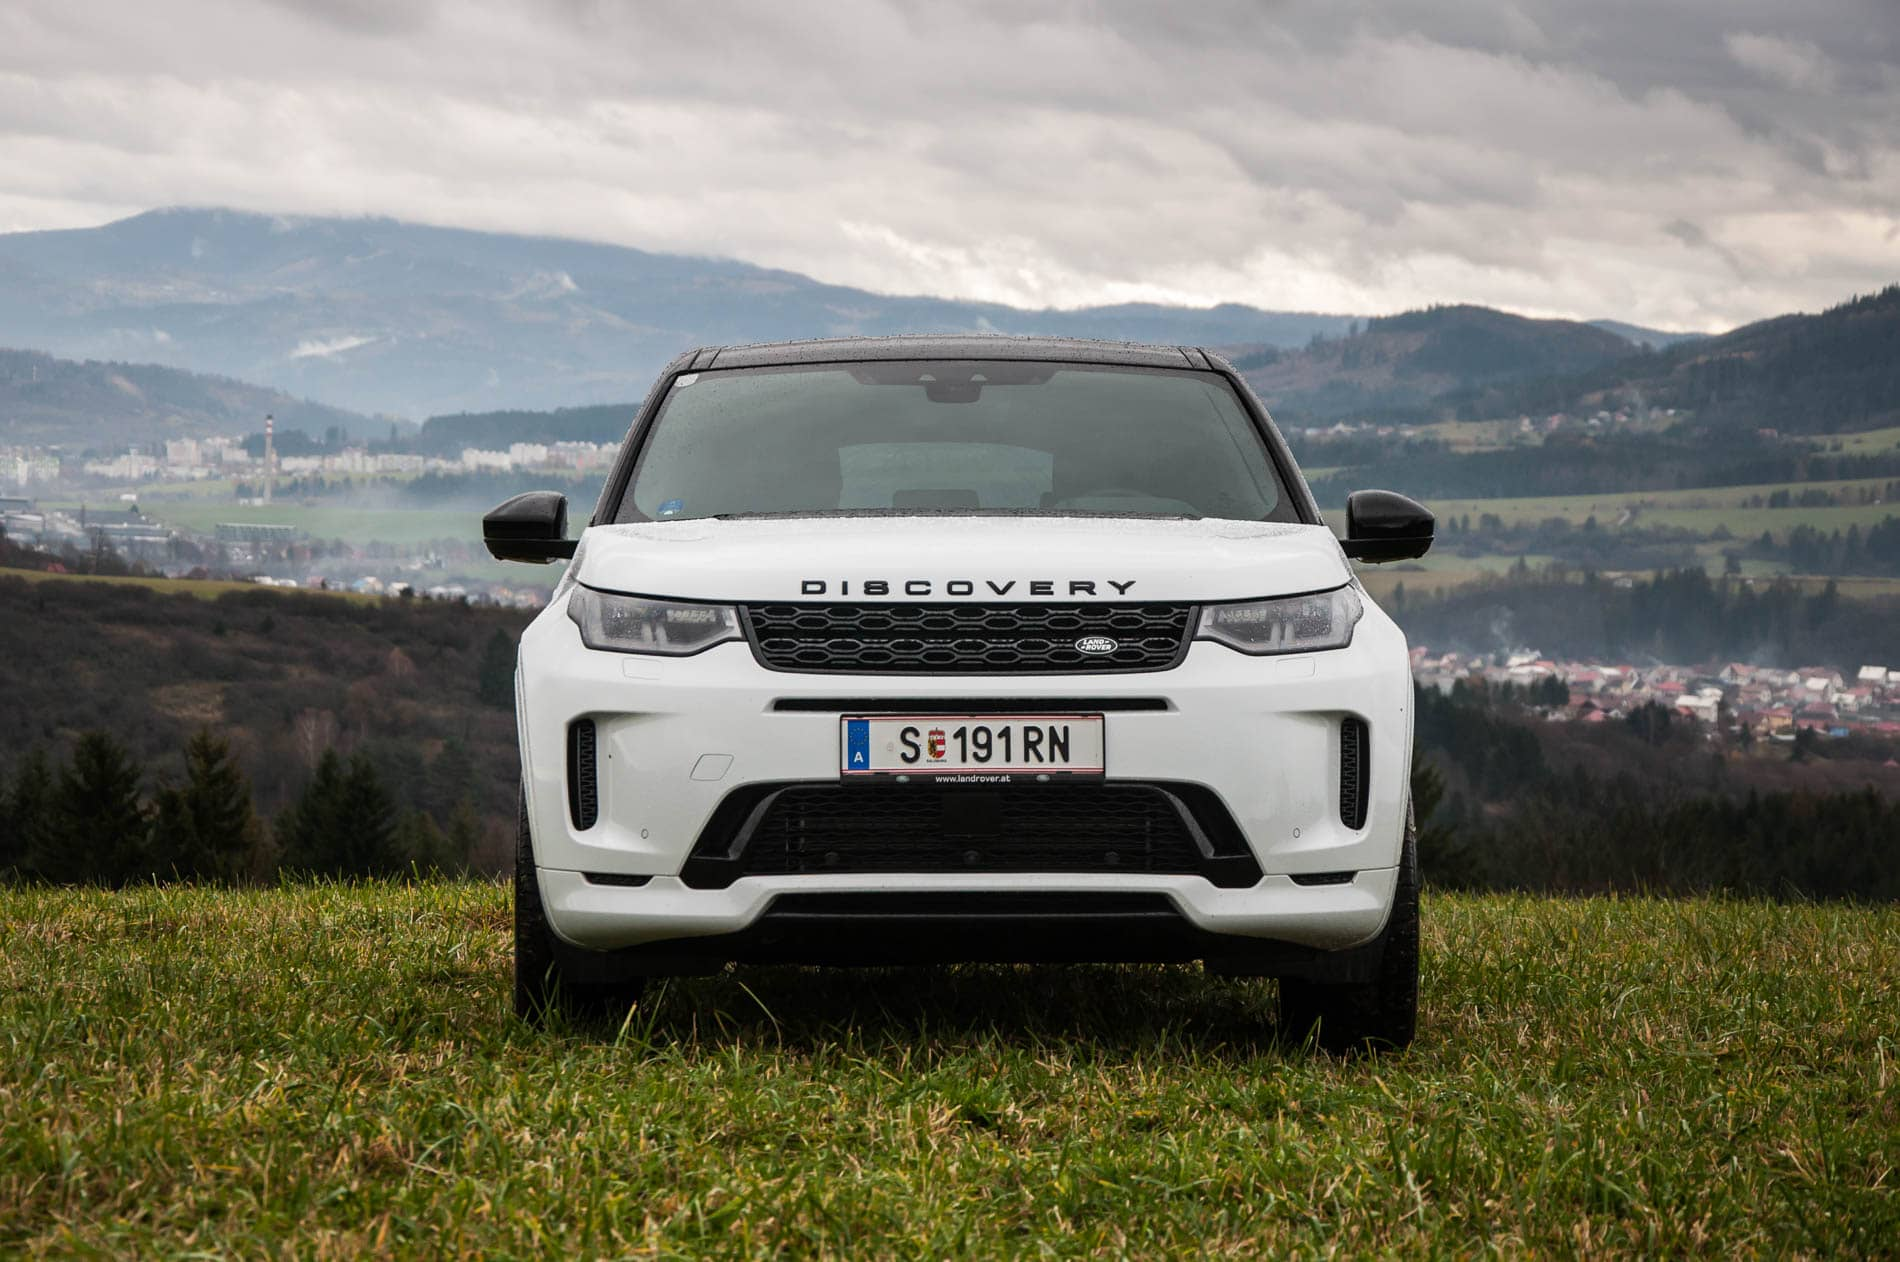 lr discovery sport 2020 (41 of 42)